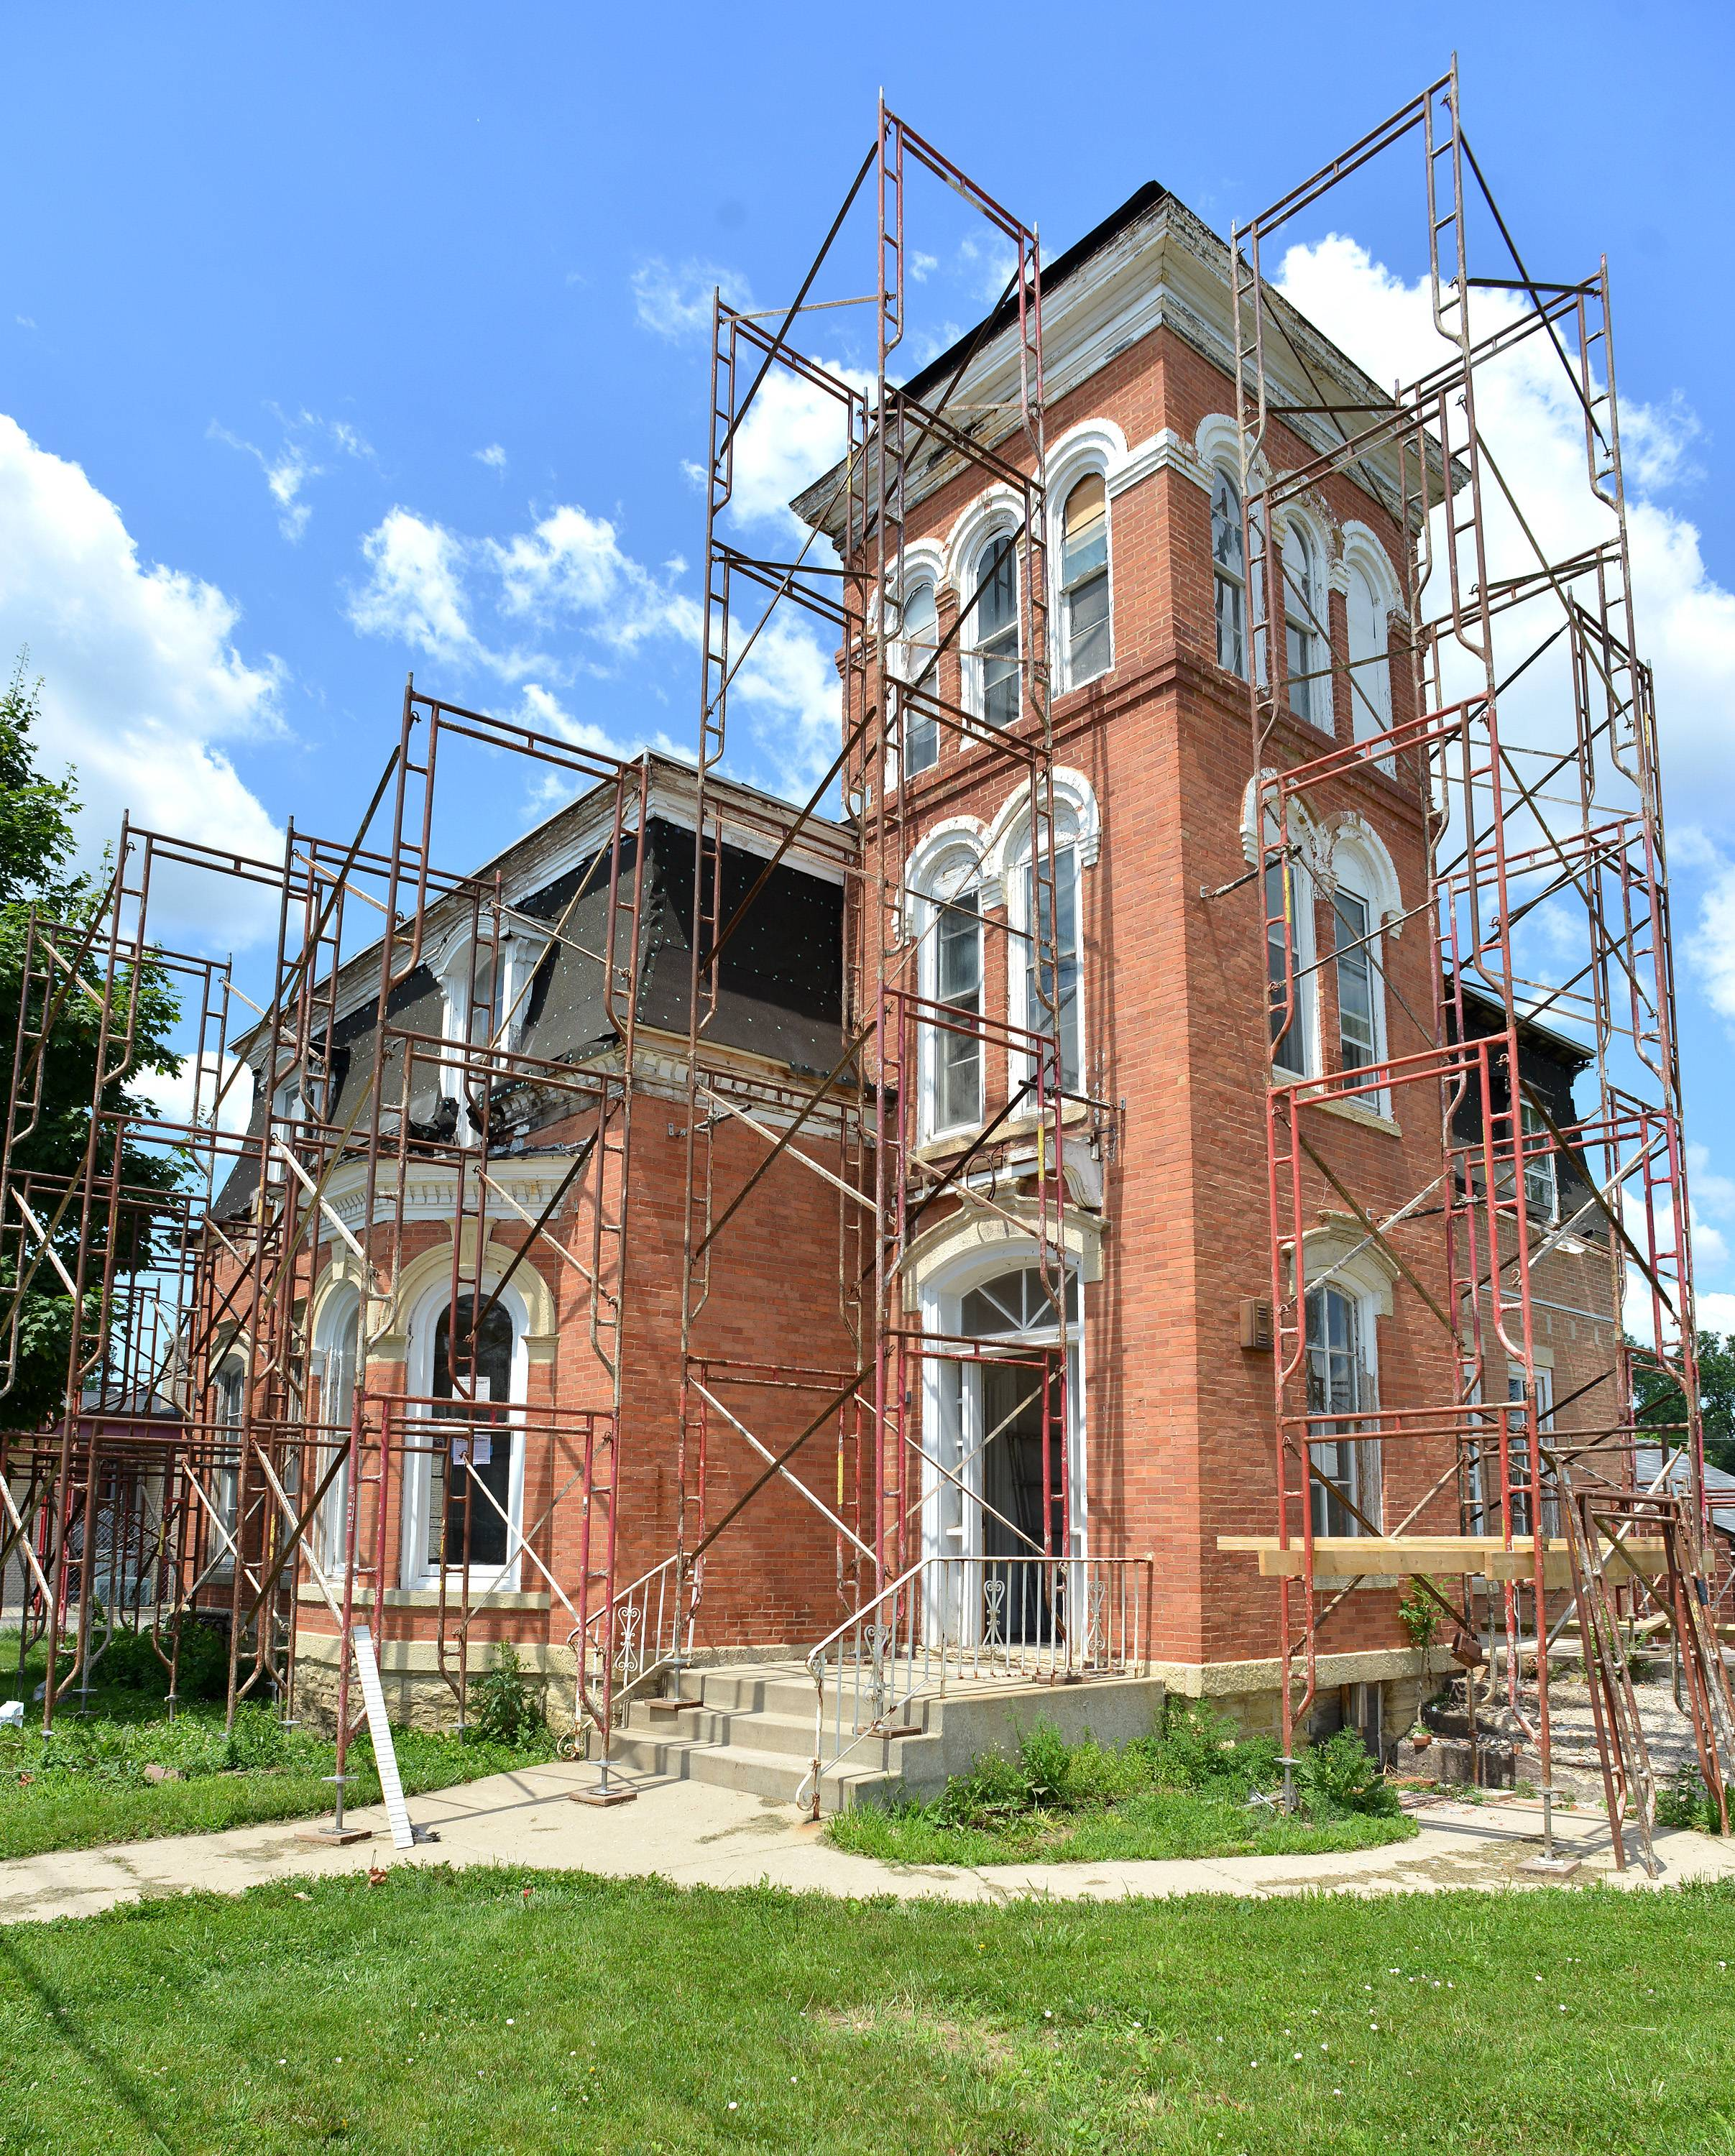 Restoration work continues on the Joel Wiant House in West Chicago. The house, built around 1869 for local businessman Joel Wiant, had fallen into a state of severe disrepair.